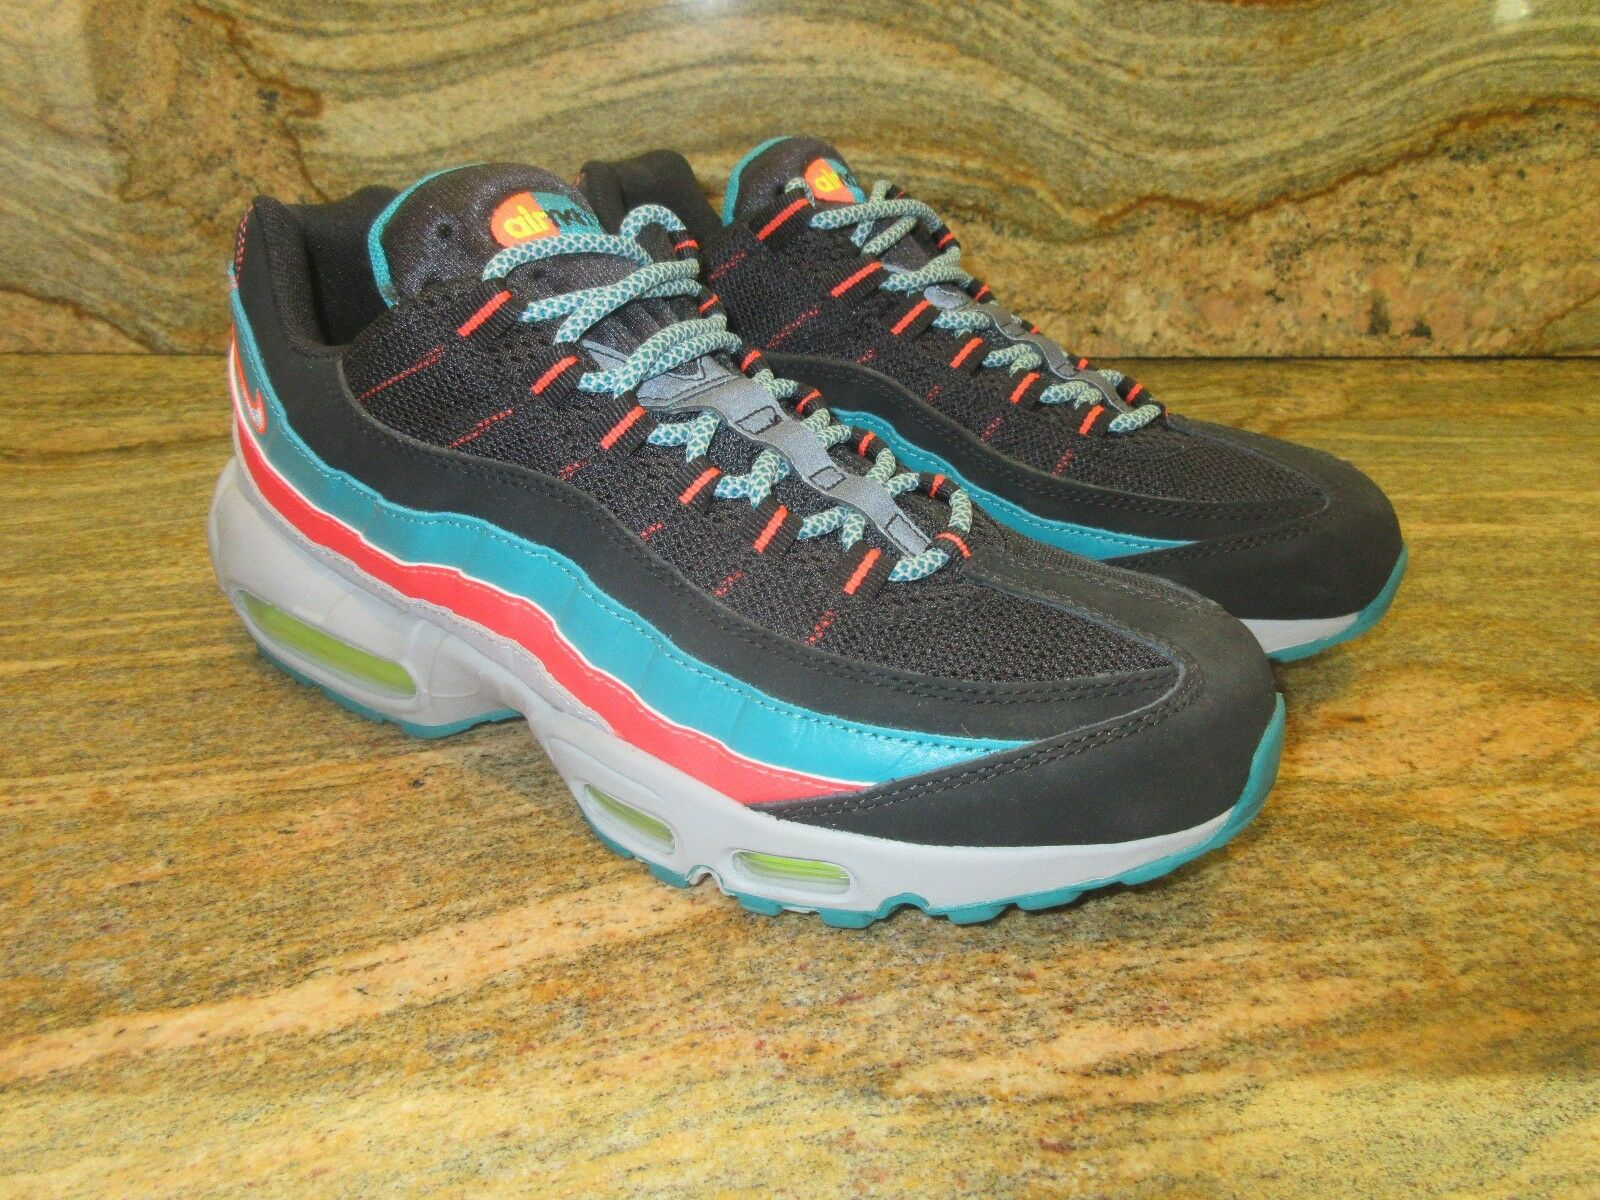 Il nike air max 95 inedito campione sz 9 south beach, miami promo 749766-002